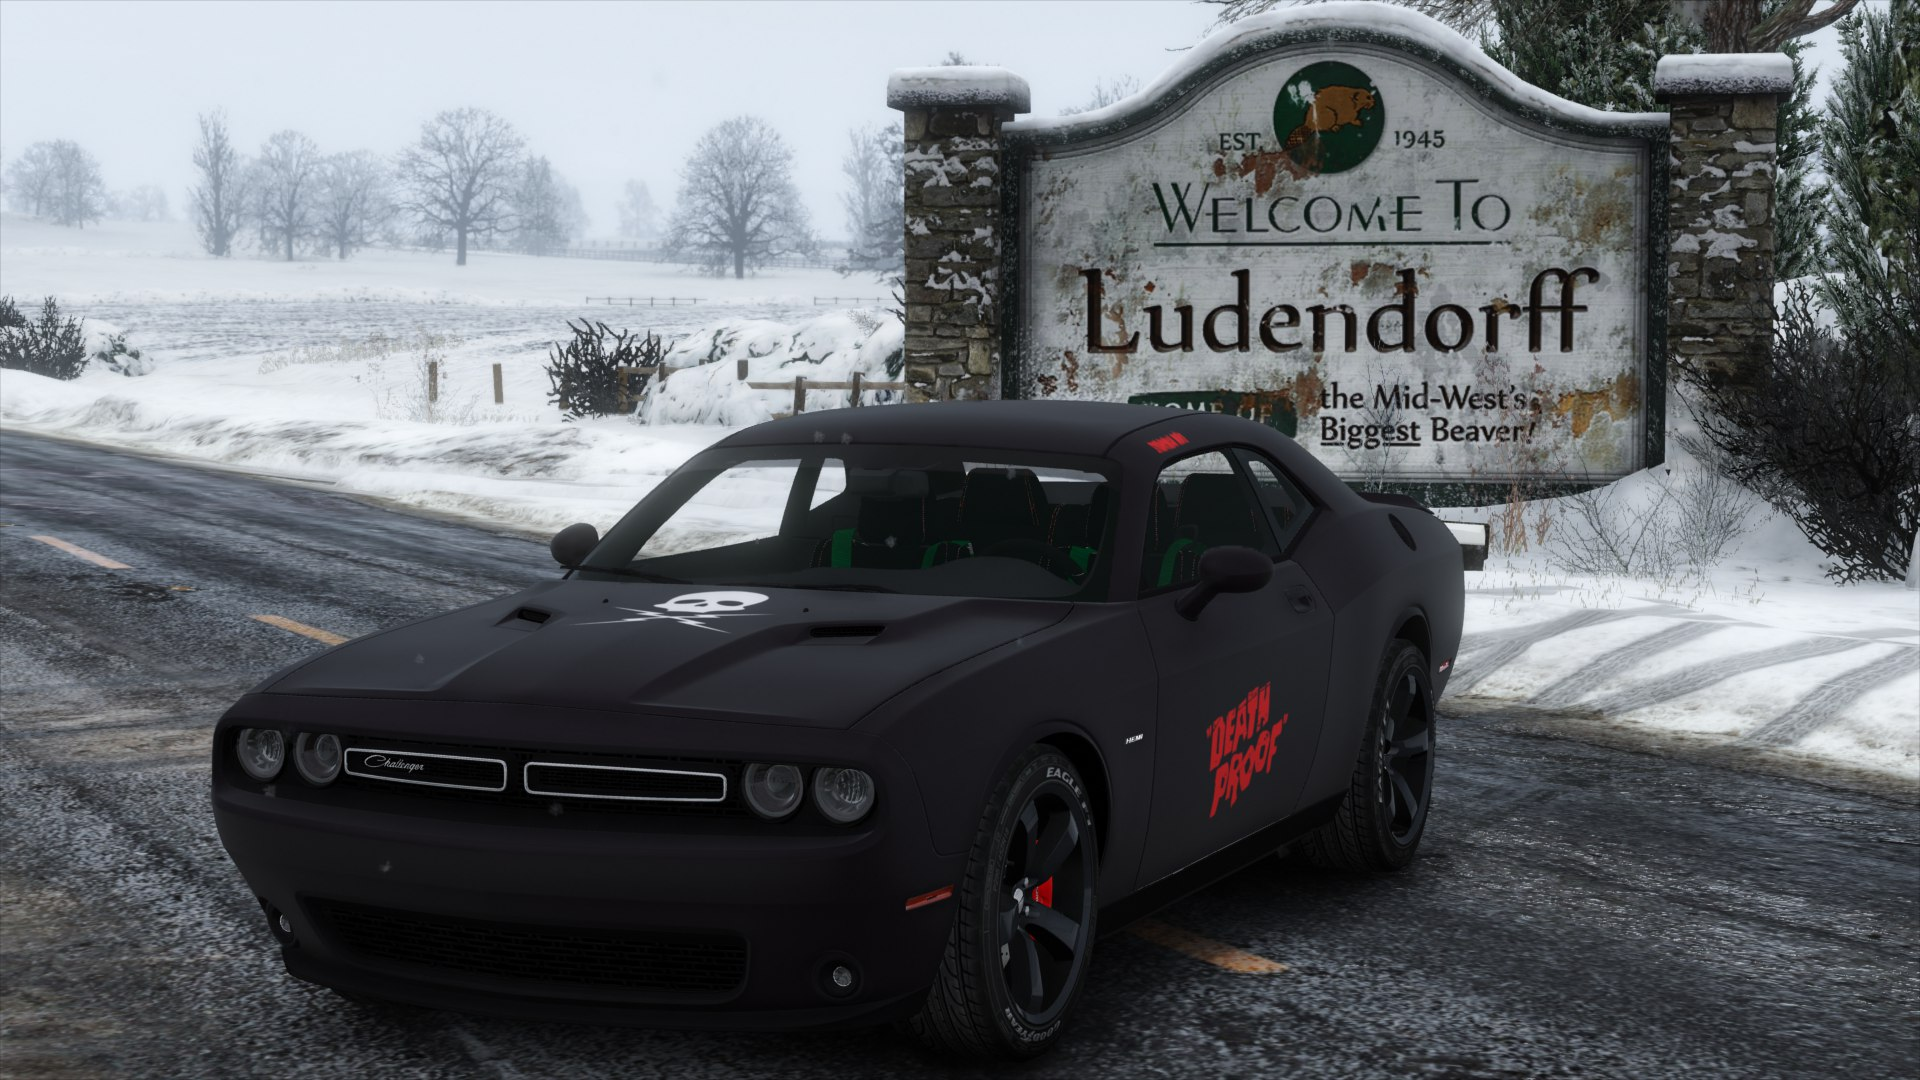 Welcome to Ludendorff GTA5